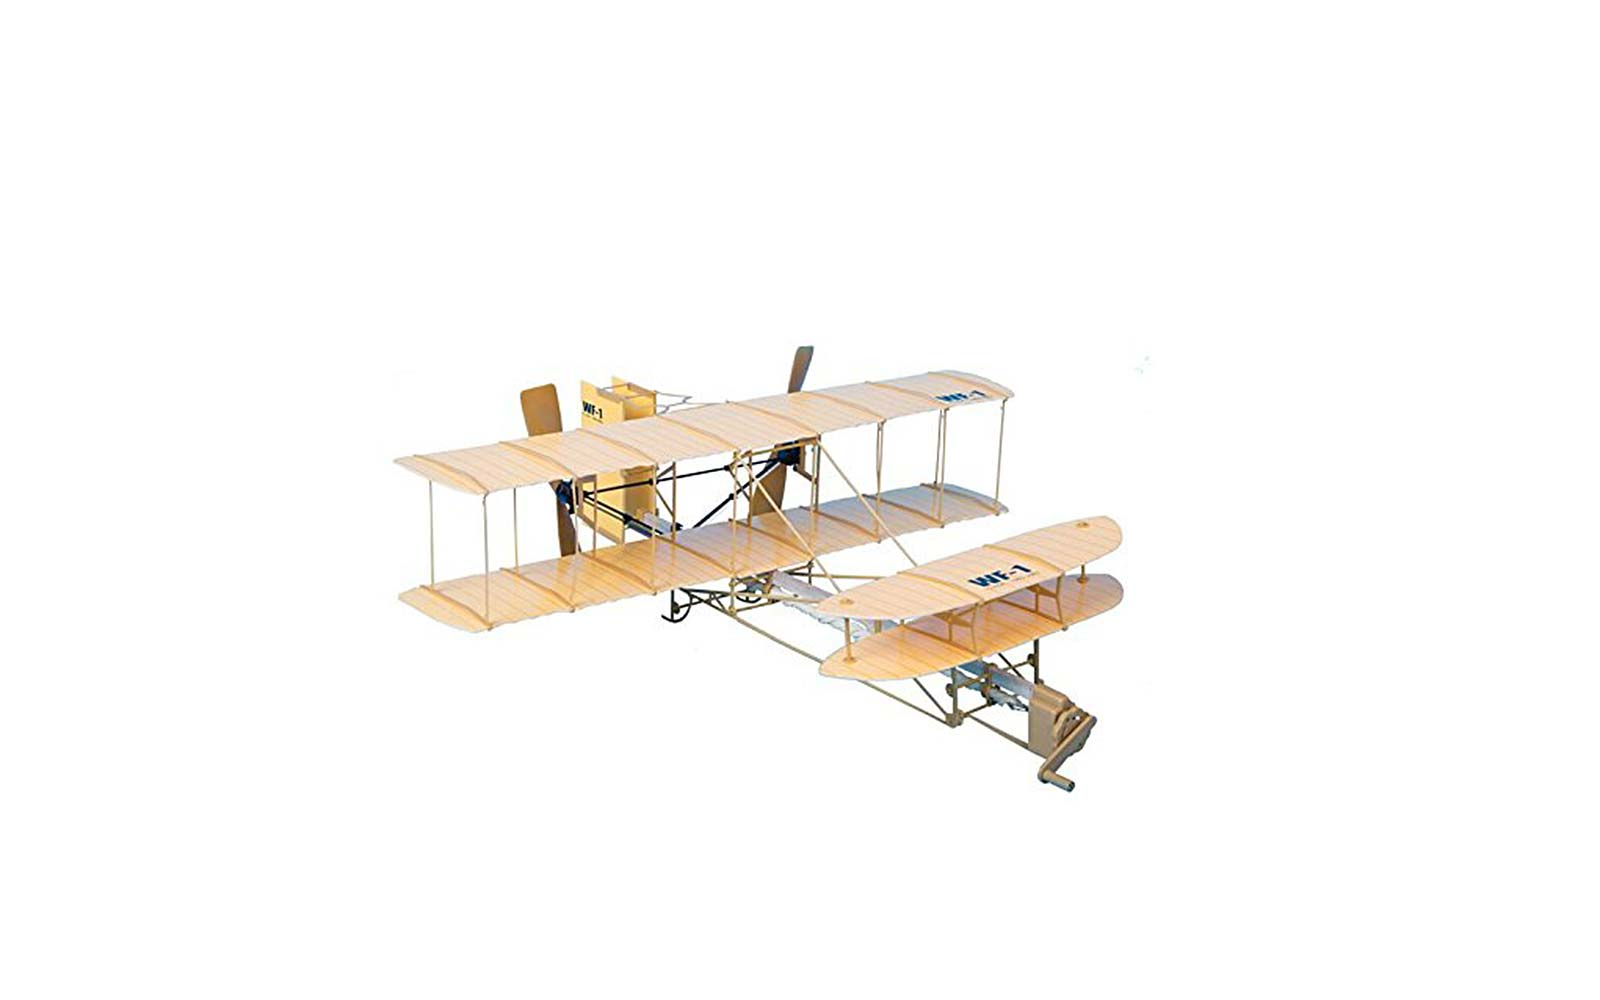 giant wright flyer model kit toy airplane